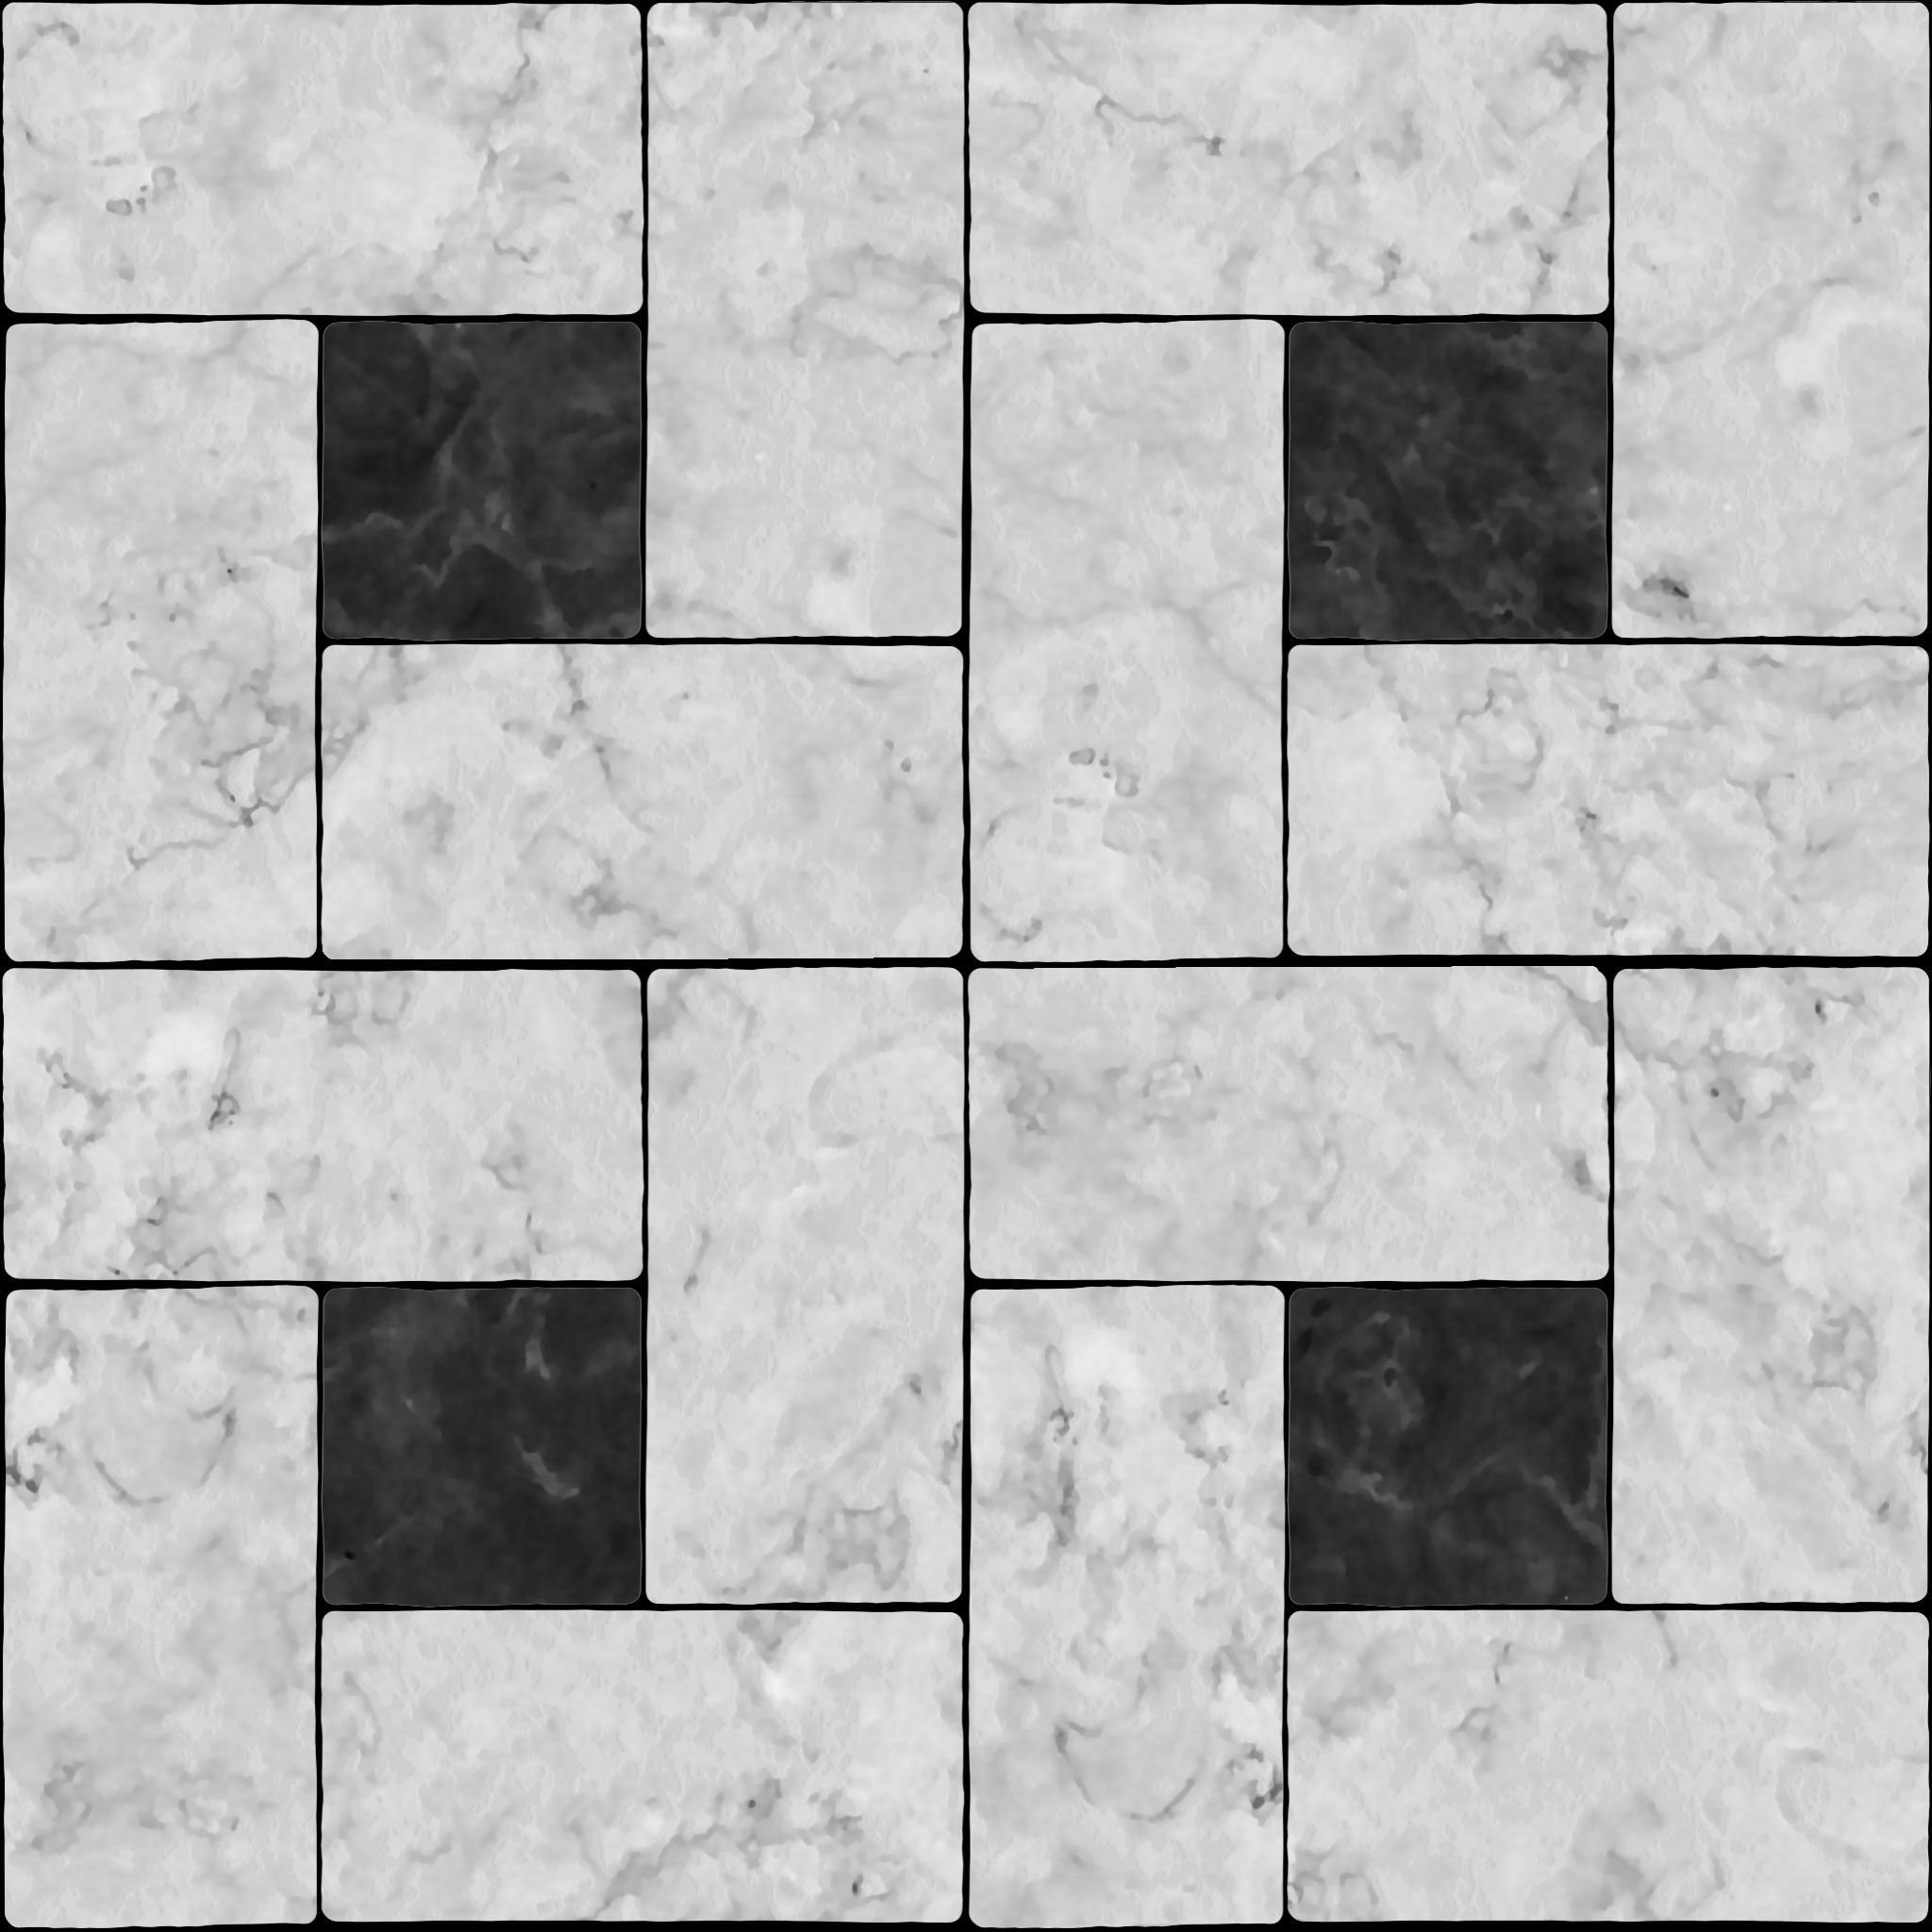 Tile Flooring Texture 2048 x 2048 resolution | Ideas for ...